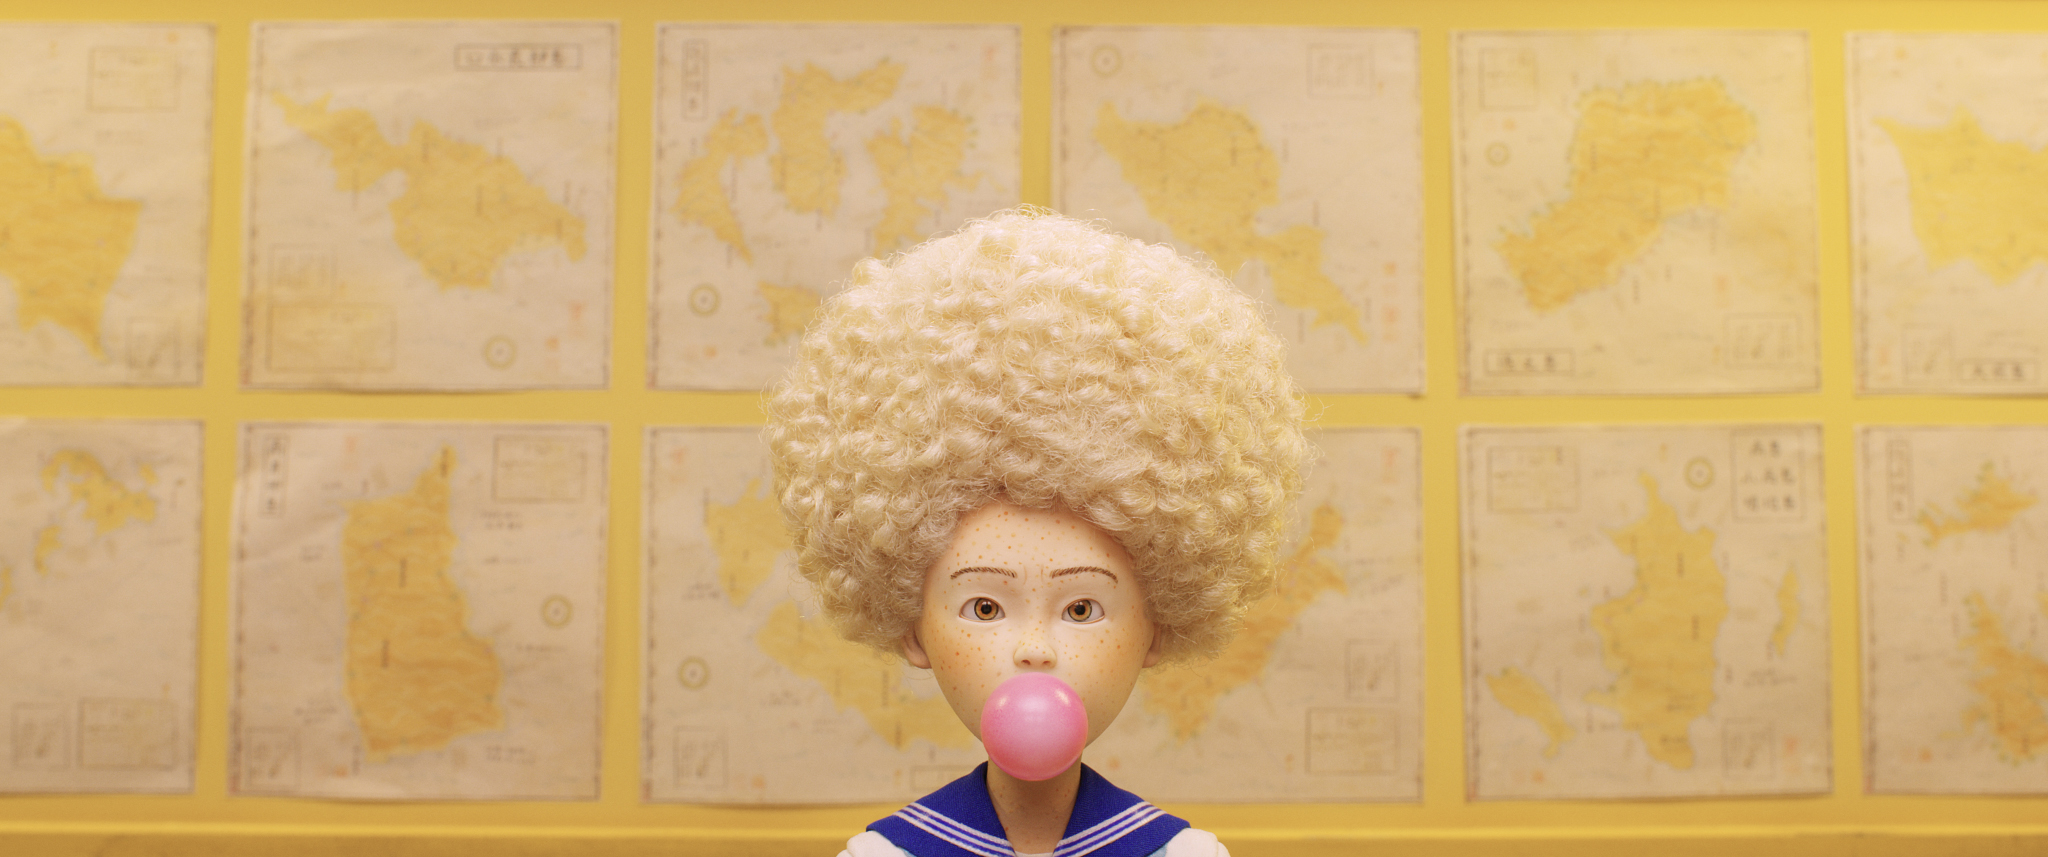 Greta Gerwig's character 'Tracy Walker' in Isle of Dogs.